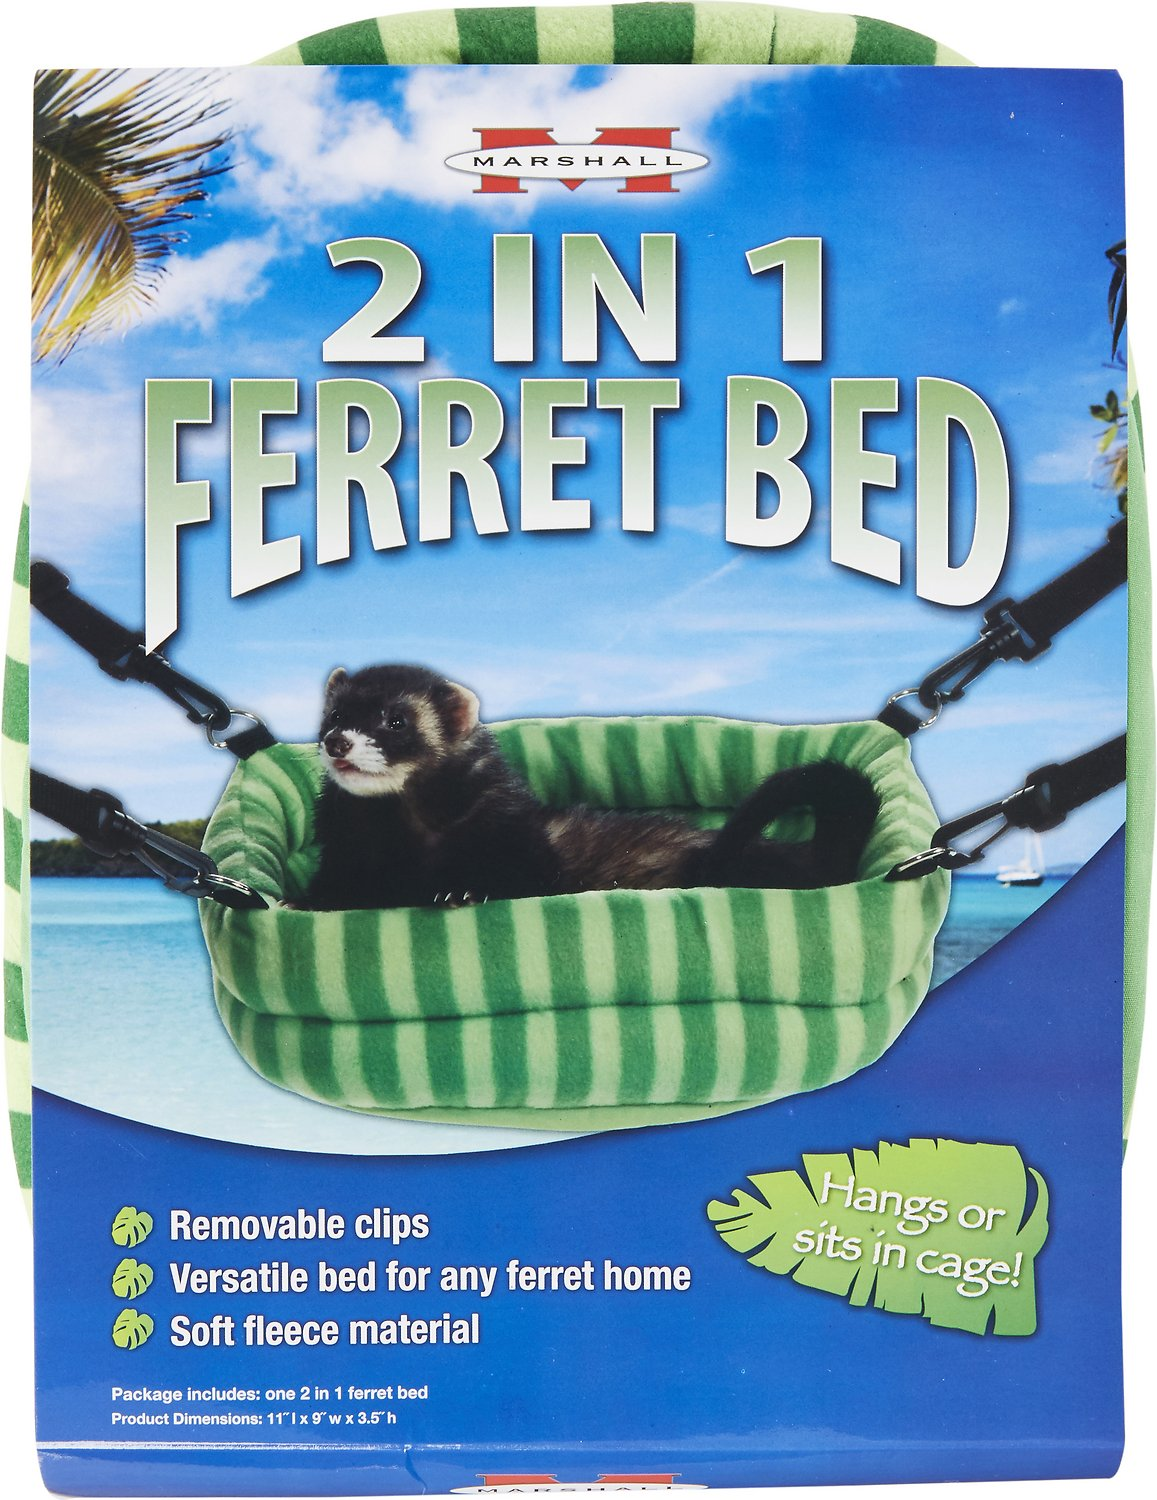 Fit Adult Ferrets and Rats 39 x 4 inches Niteangel Small Pet Fun Tunnel